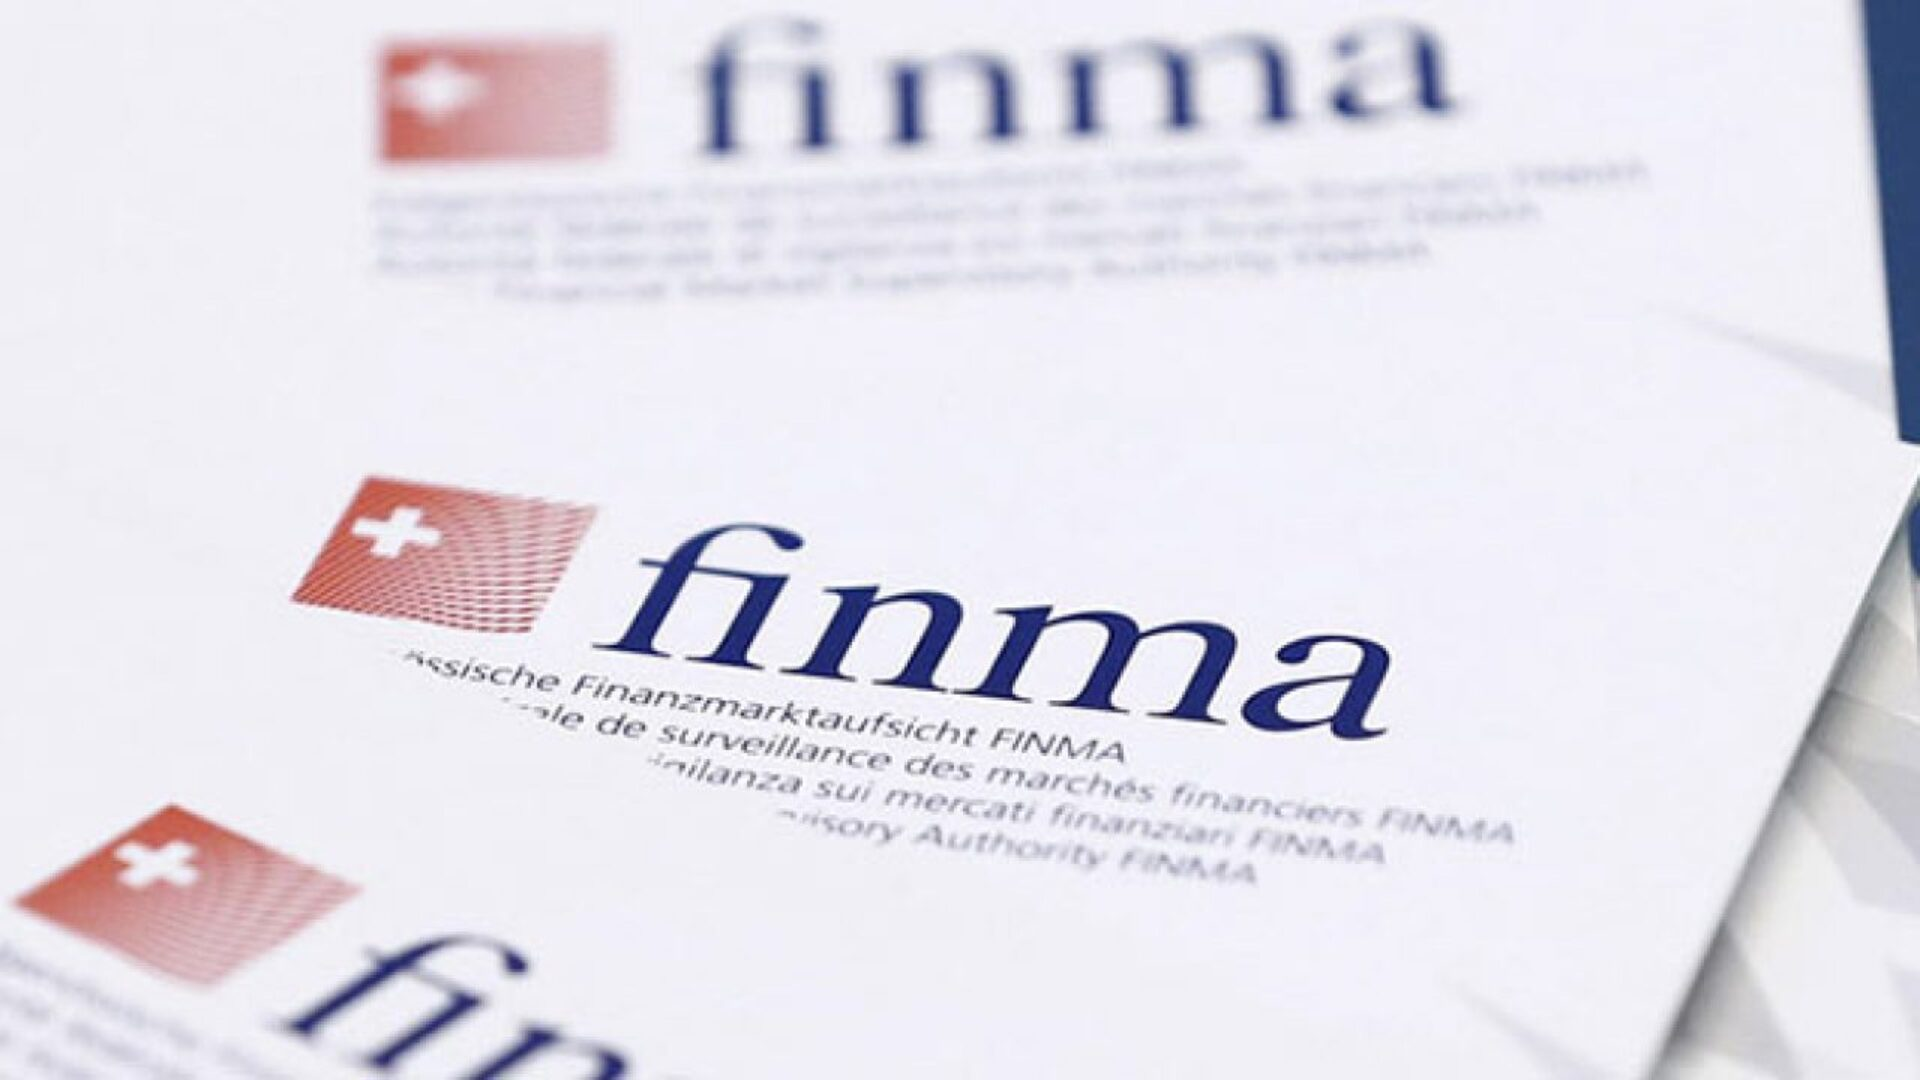 FINMA Stamp